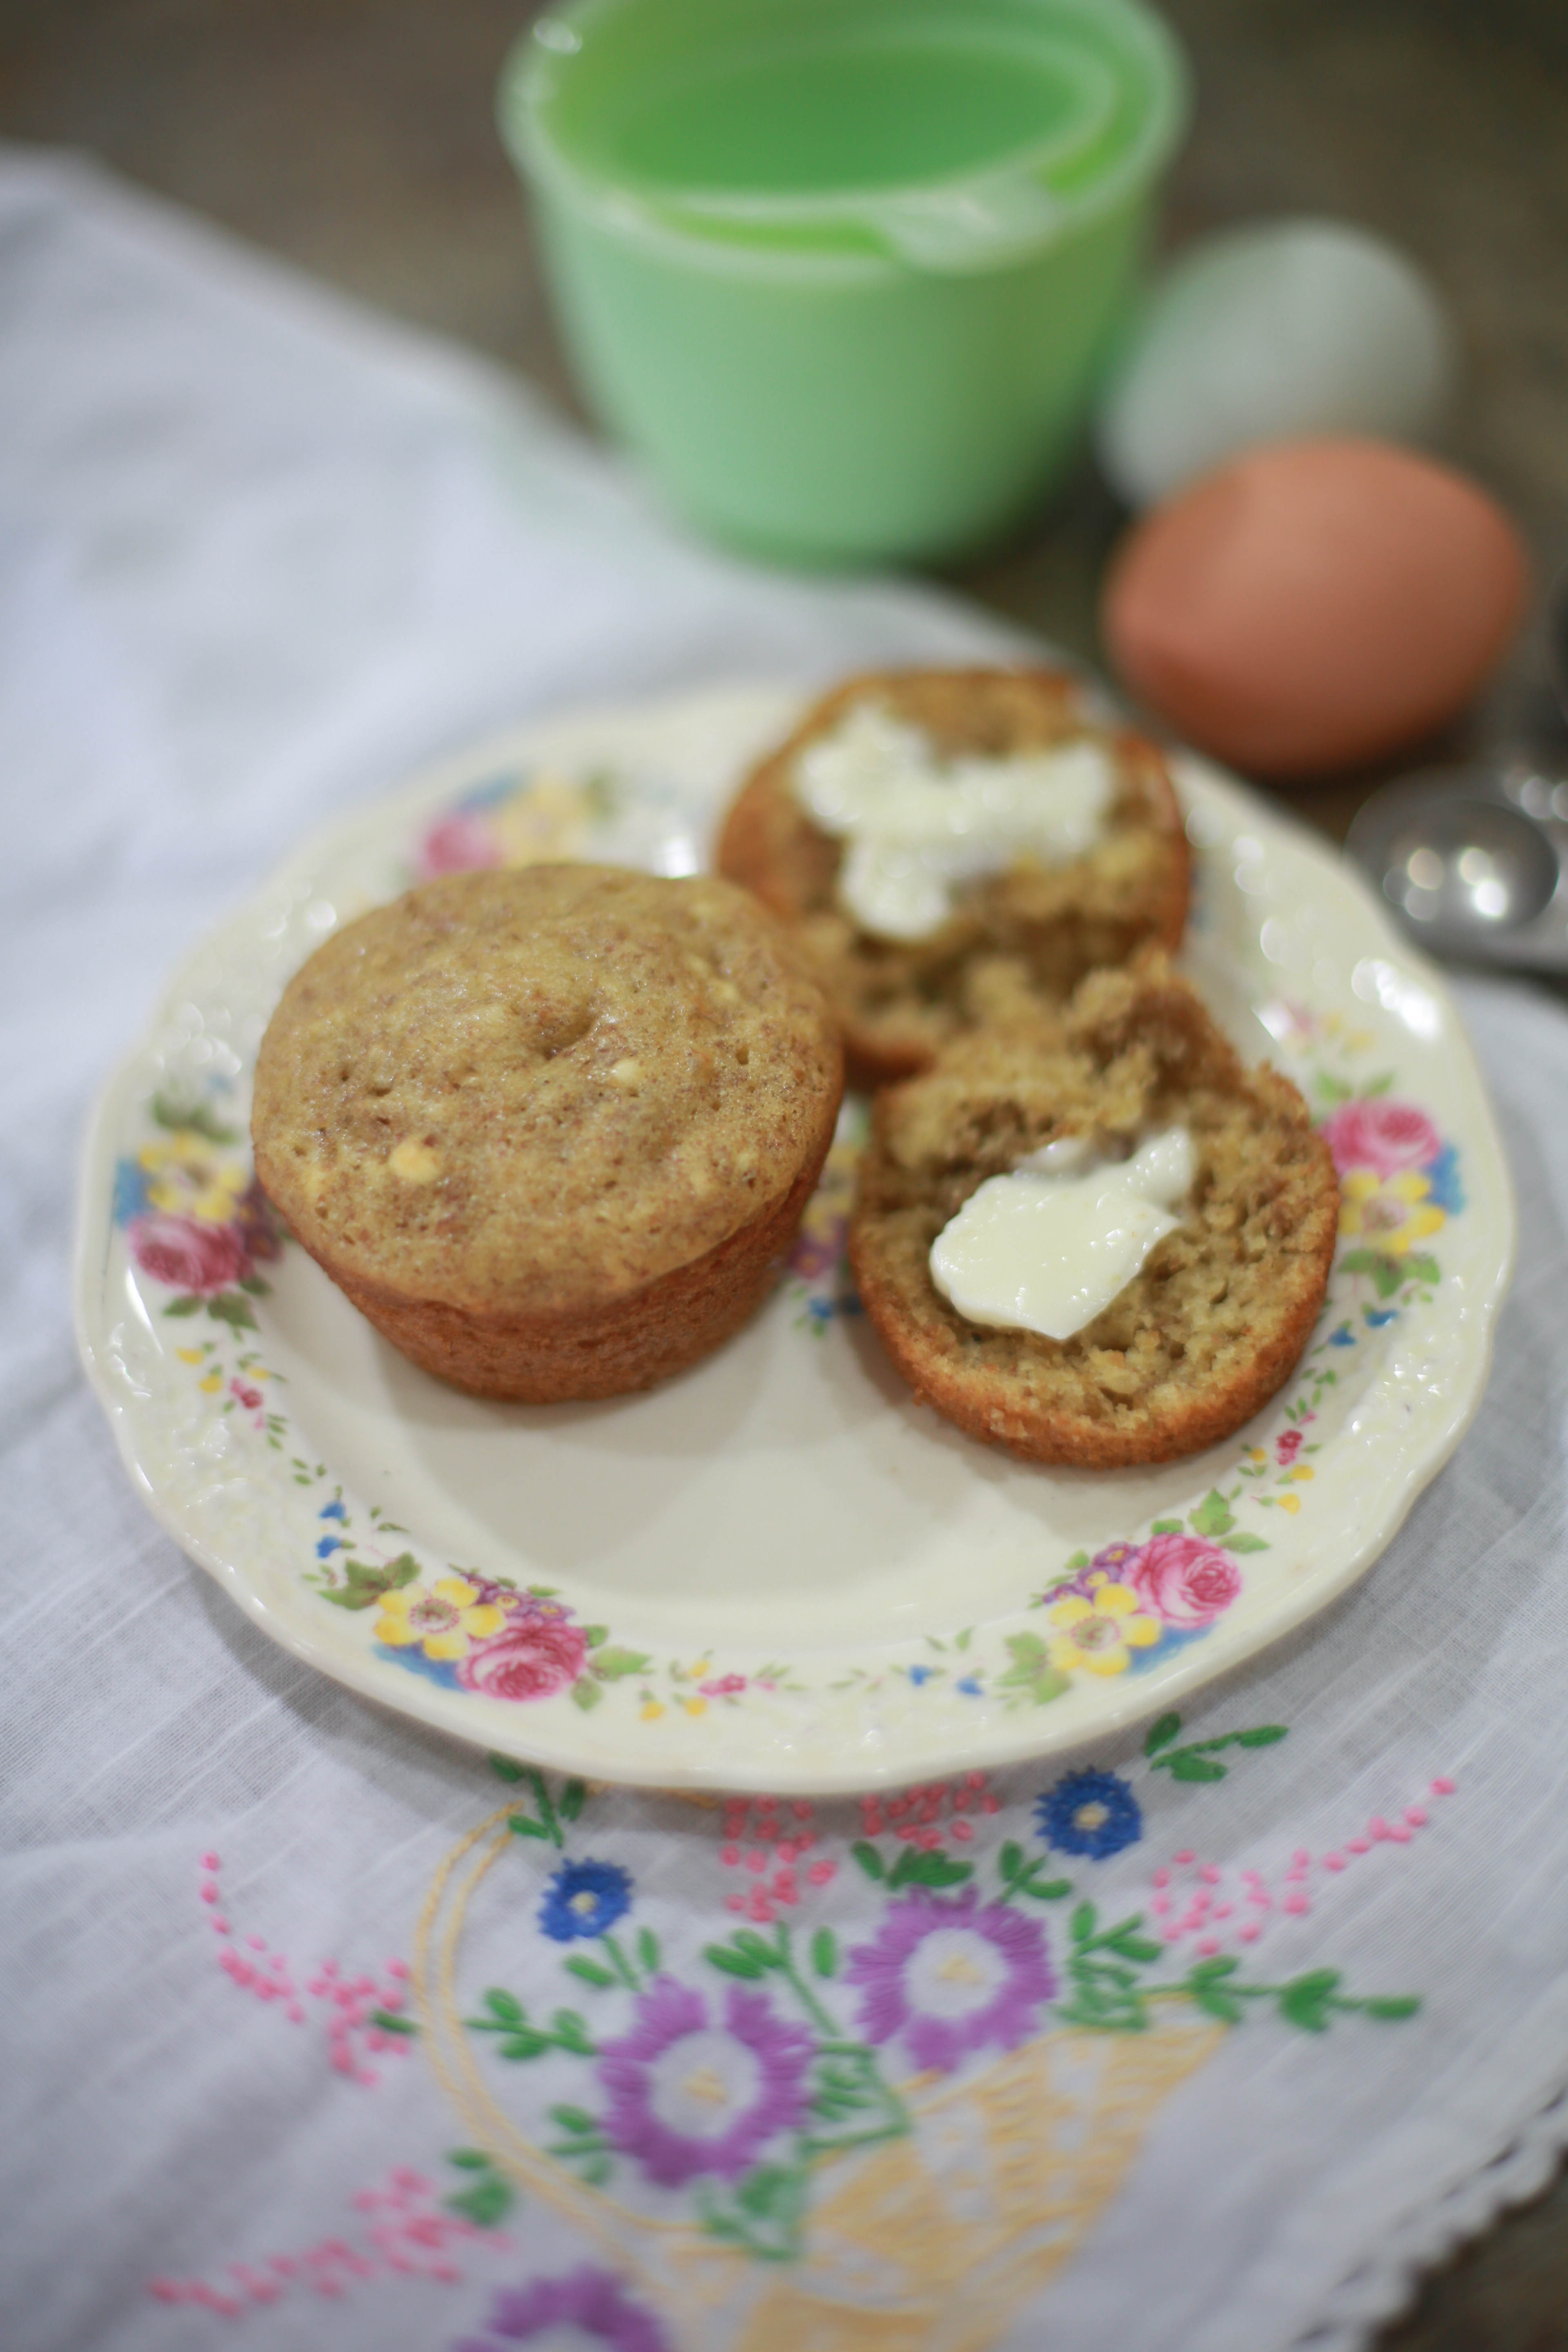 From the Farmer's Wife: Refrigerator Bran Muffins